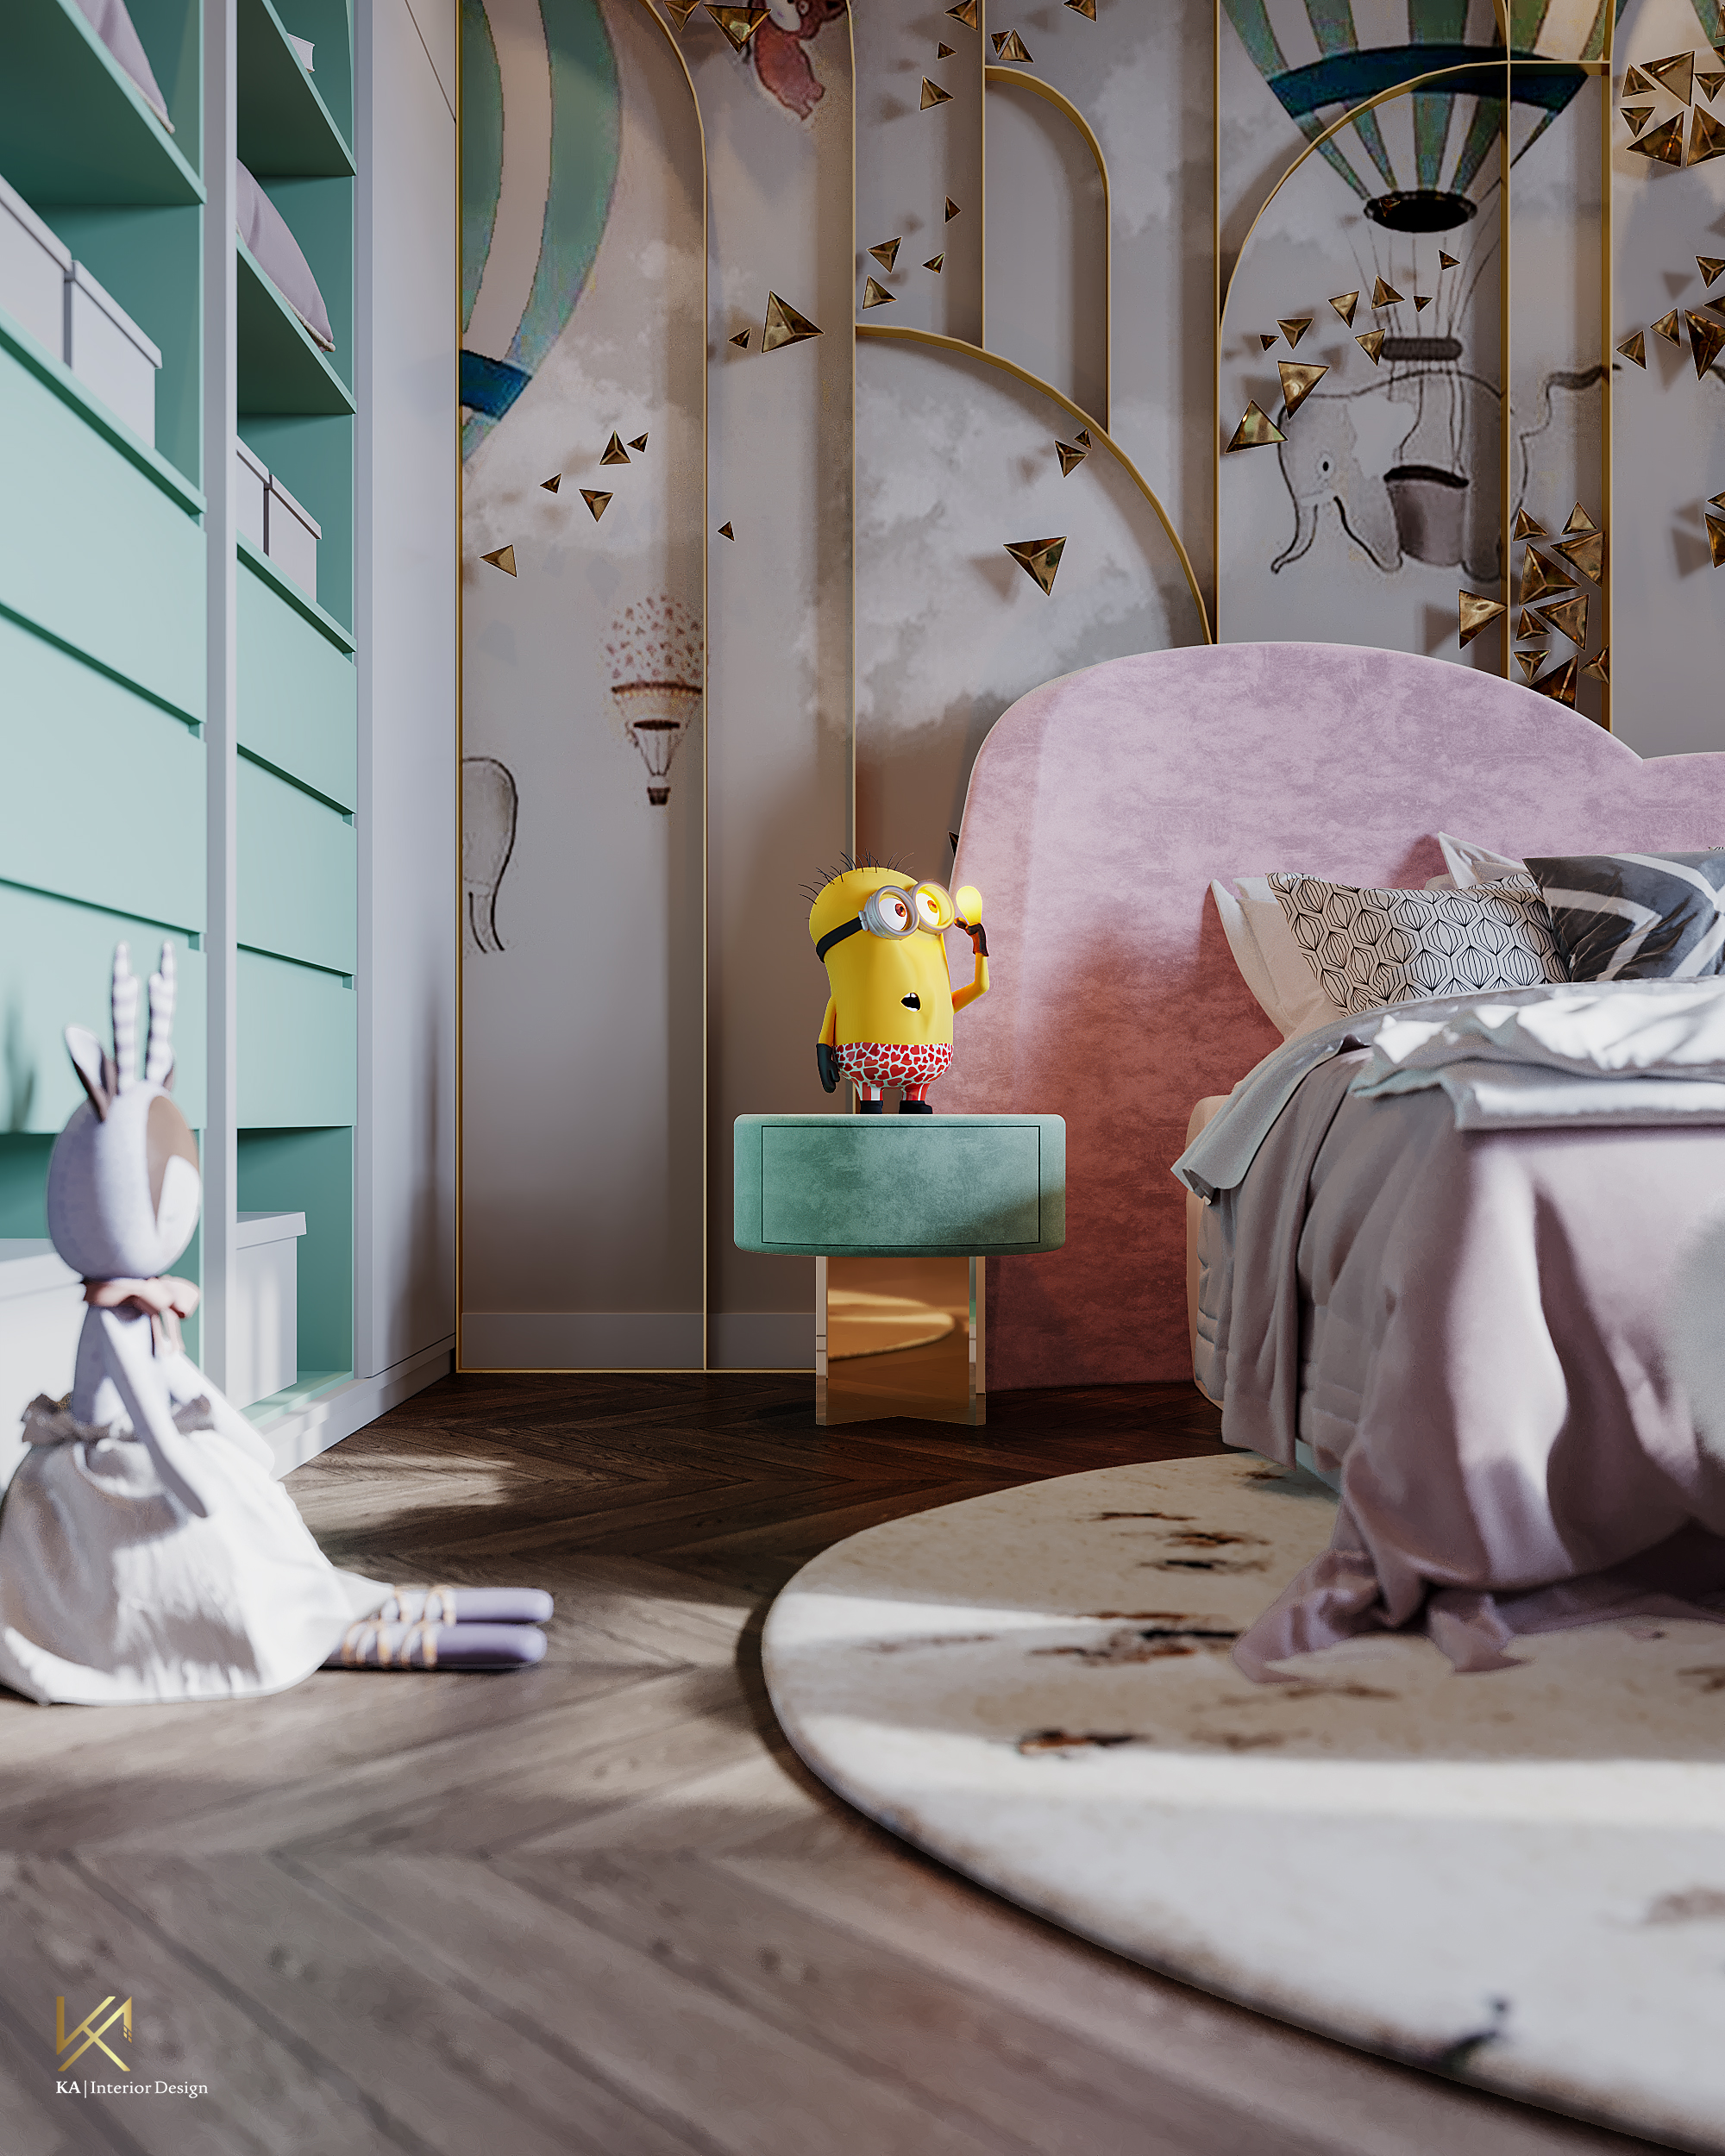 Luxury Girls Room: In a Cloudy Sky, be a golden star-5